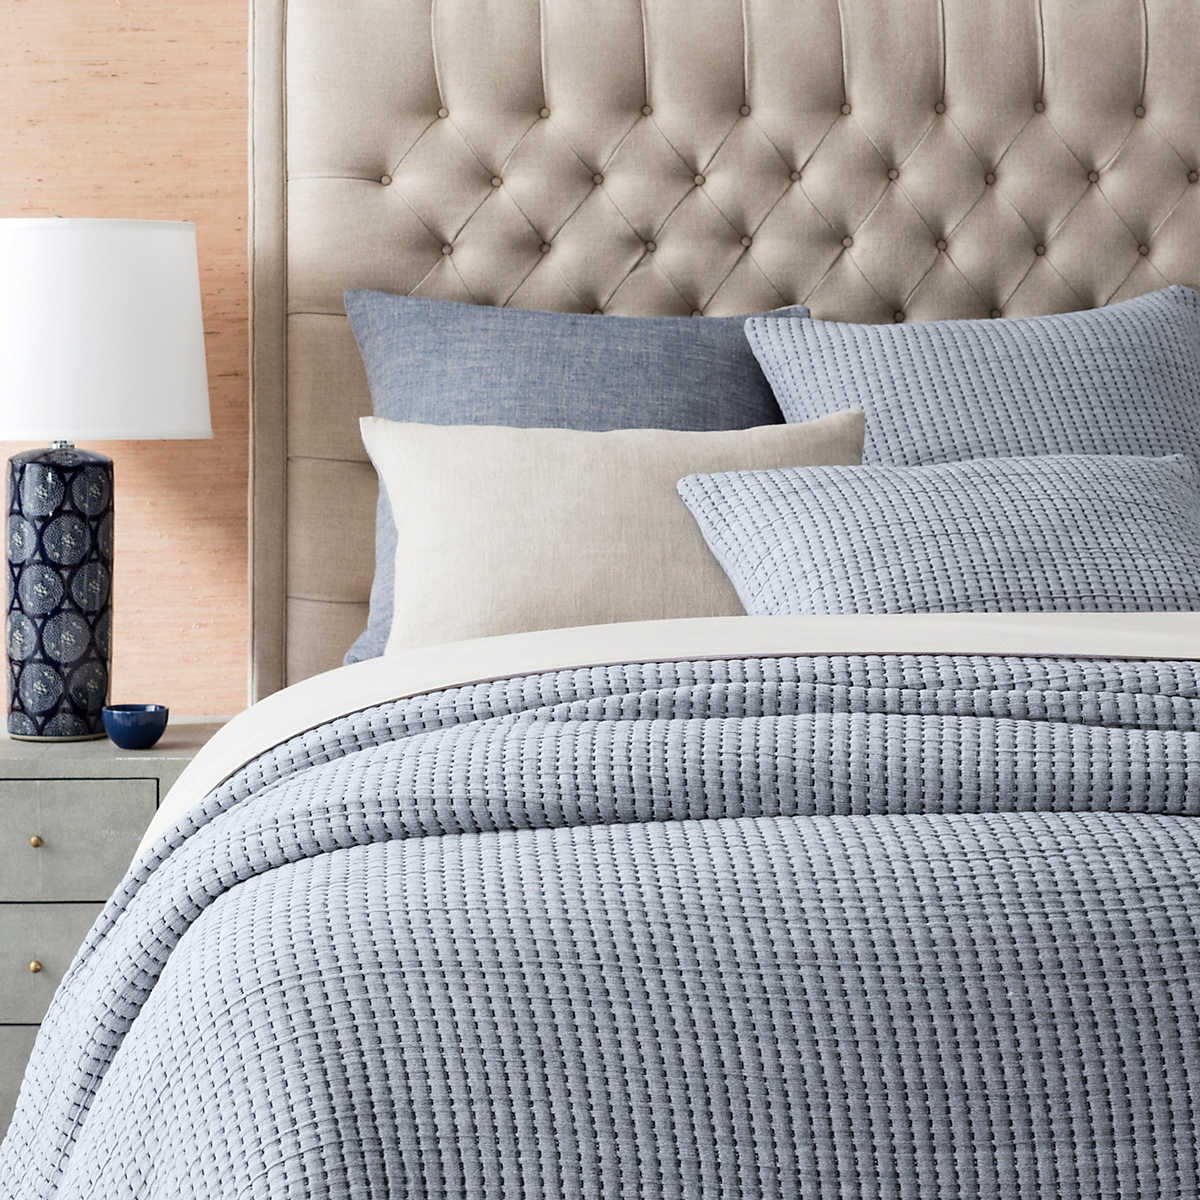 Muebles Coruña Outlet Xtd6 Pick Stitch Navy Matelassà Coverlet Pine Cone Hill